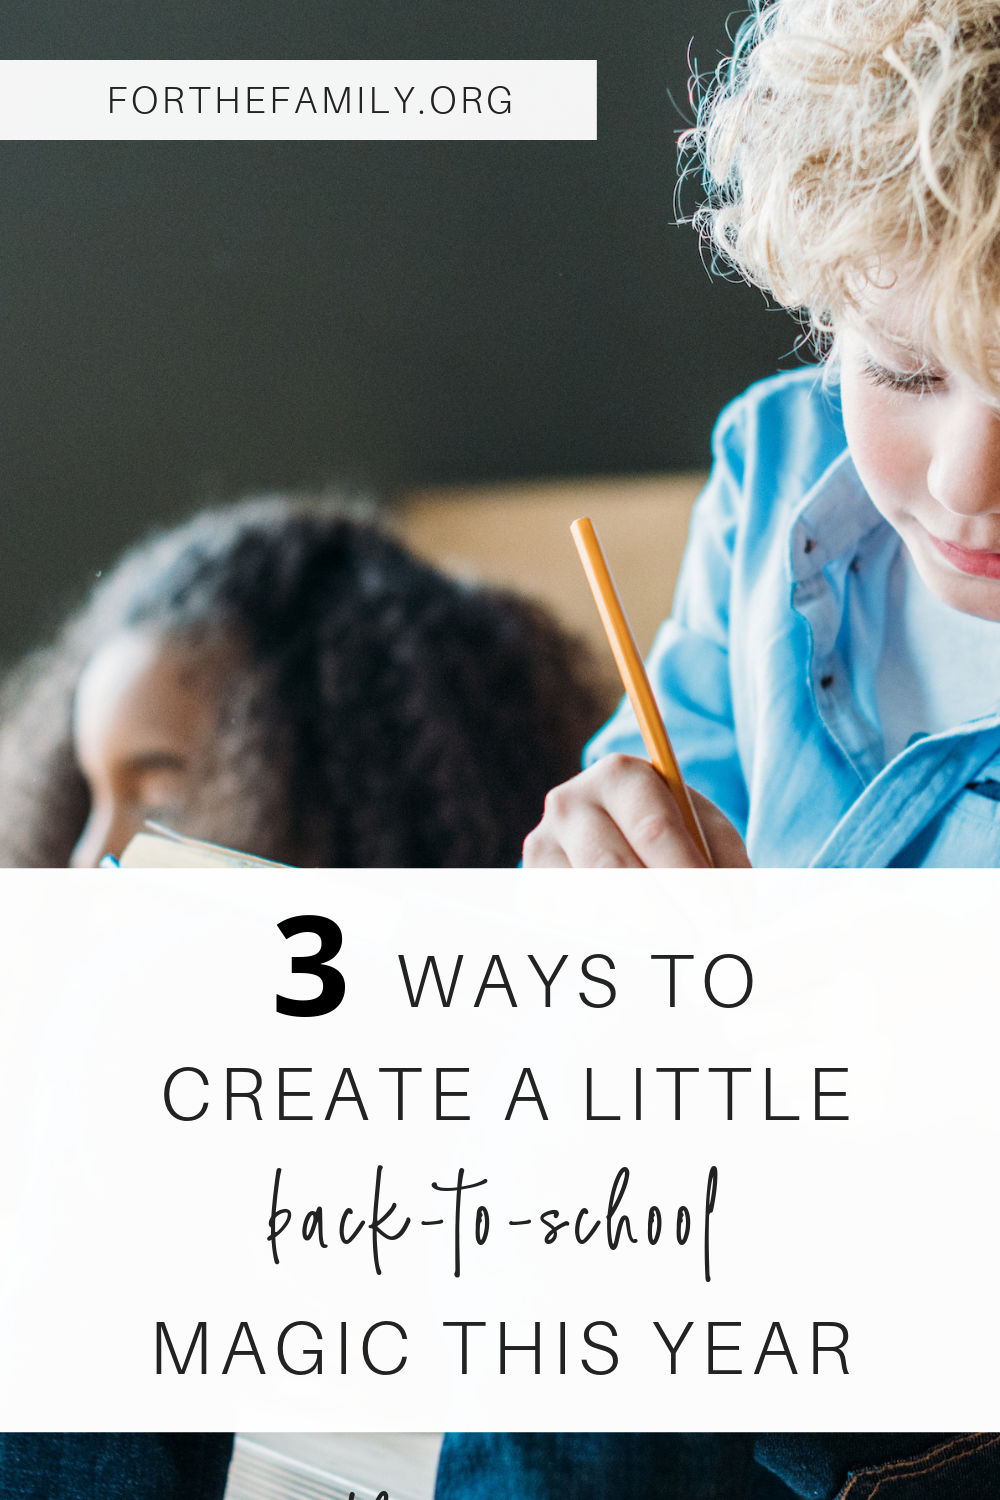 Back to school can feel a little overwhelming with so many check-lists, errands and lists. So why not add a little wonder to this new season? We've got ideas to help make this Back to School season special (and a lot more fun!)